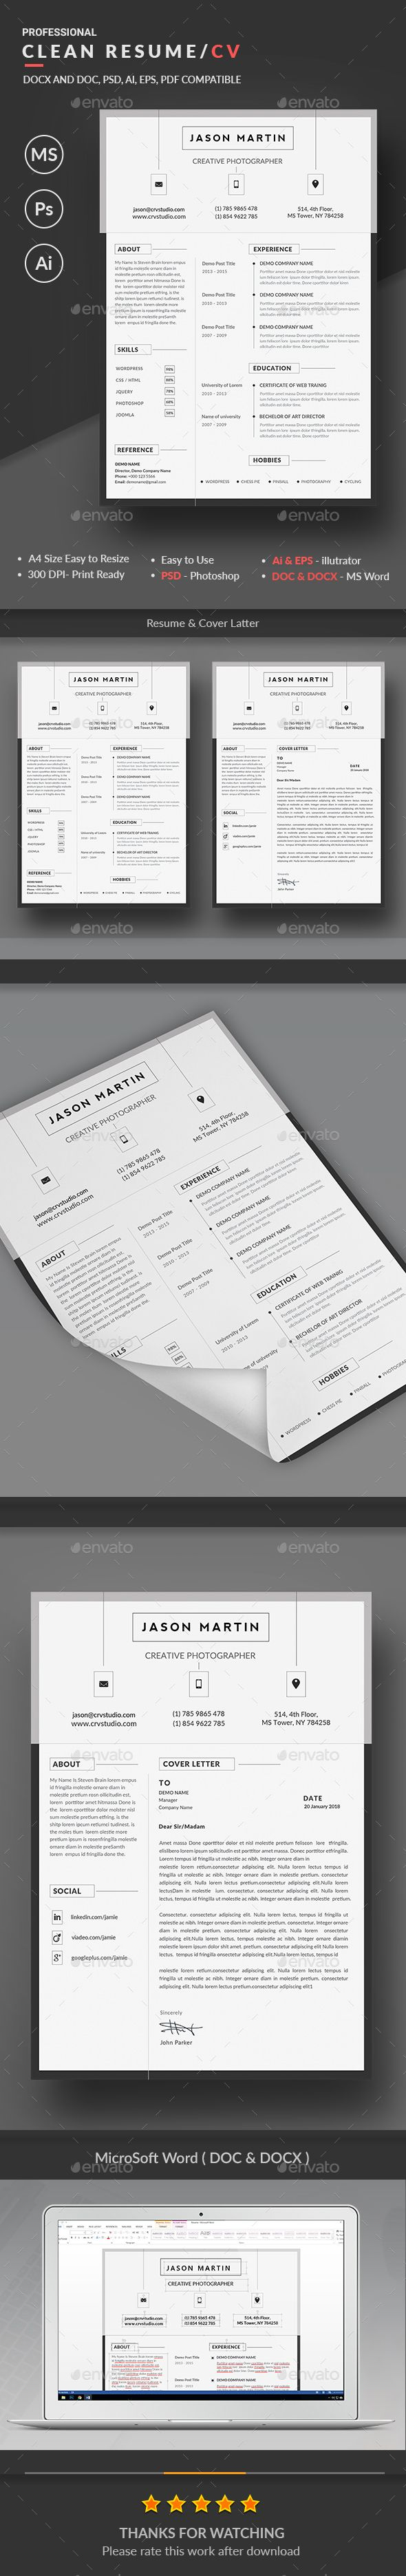 10 best Resume images on Pinterest | Resume, Curriculum and Cv template